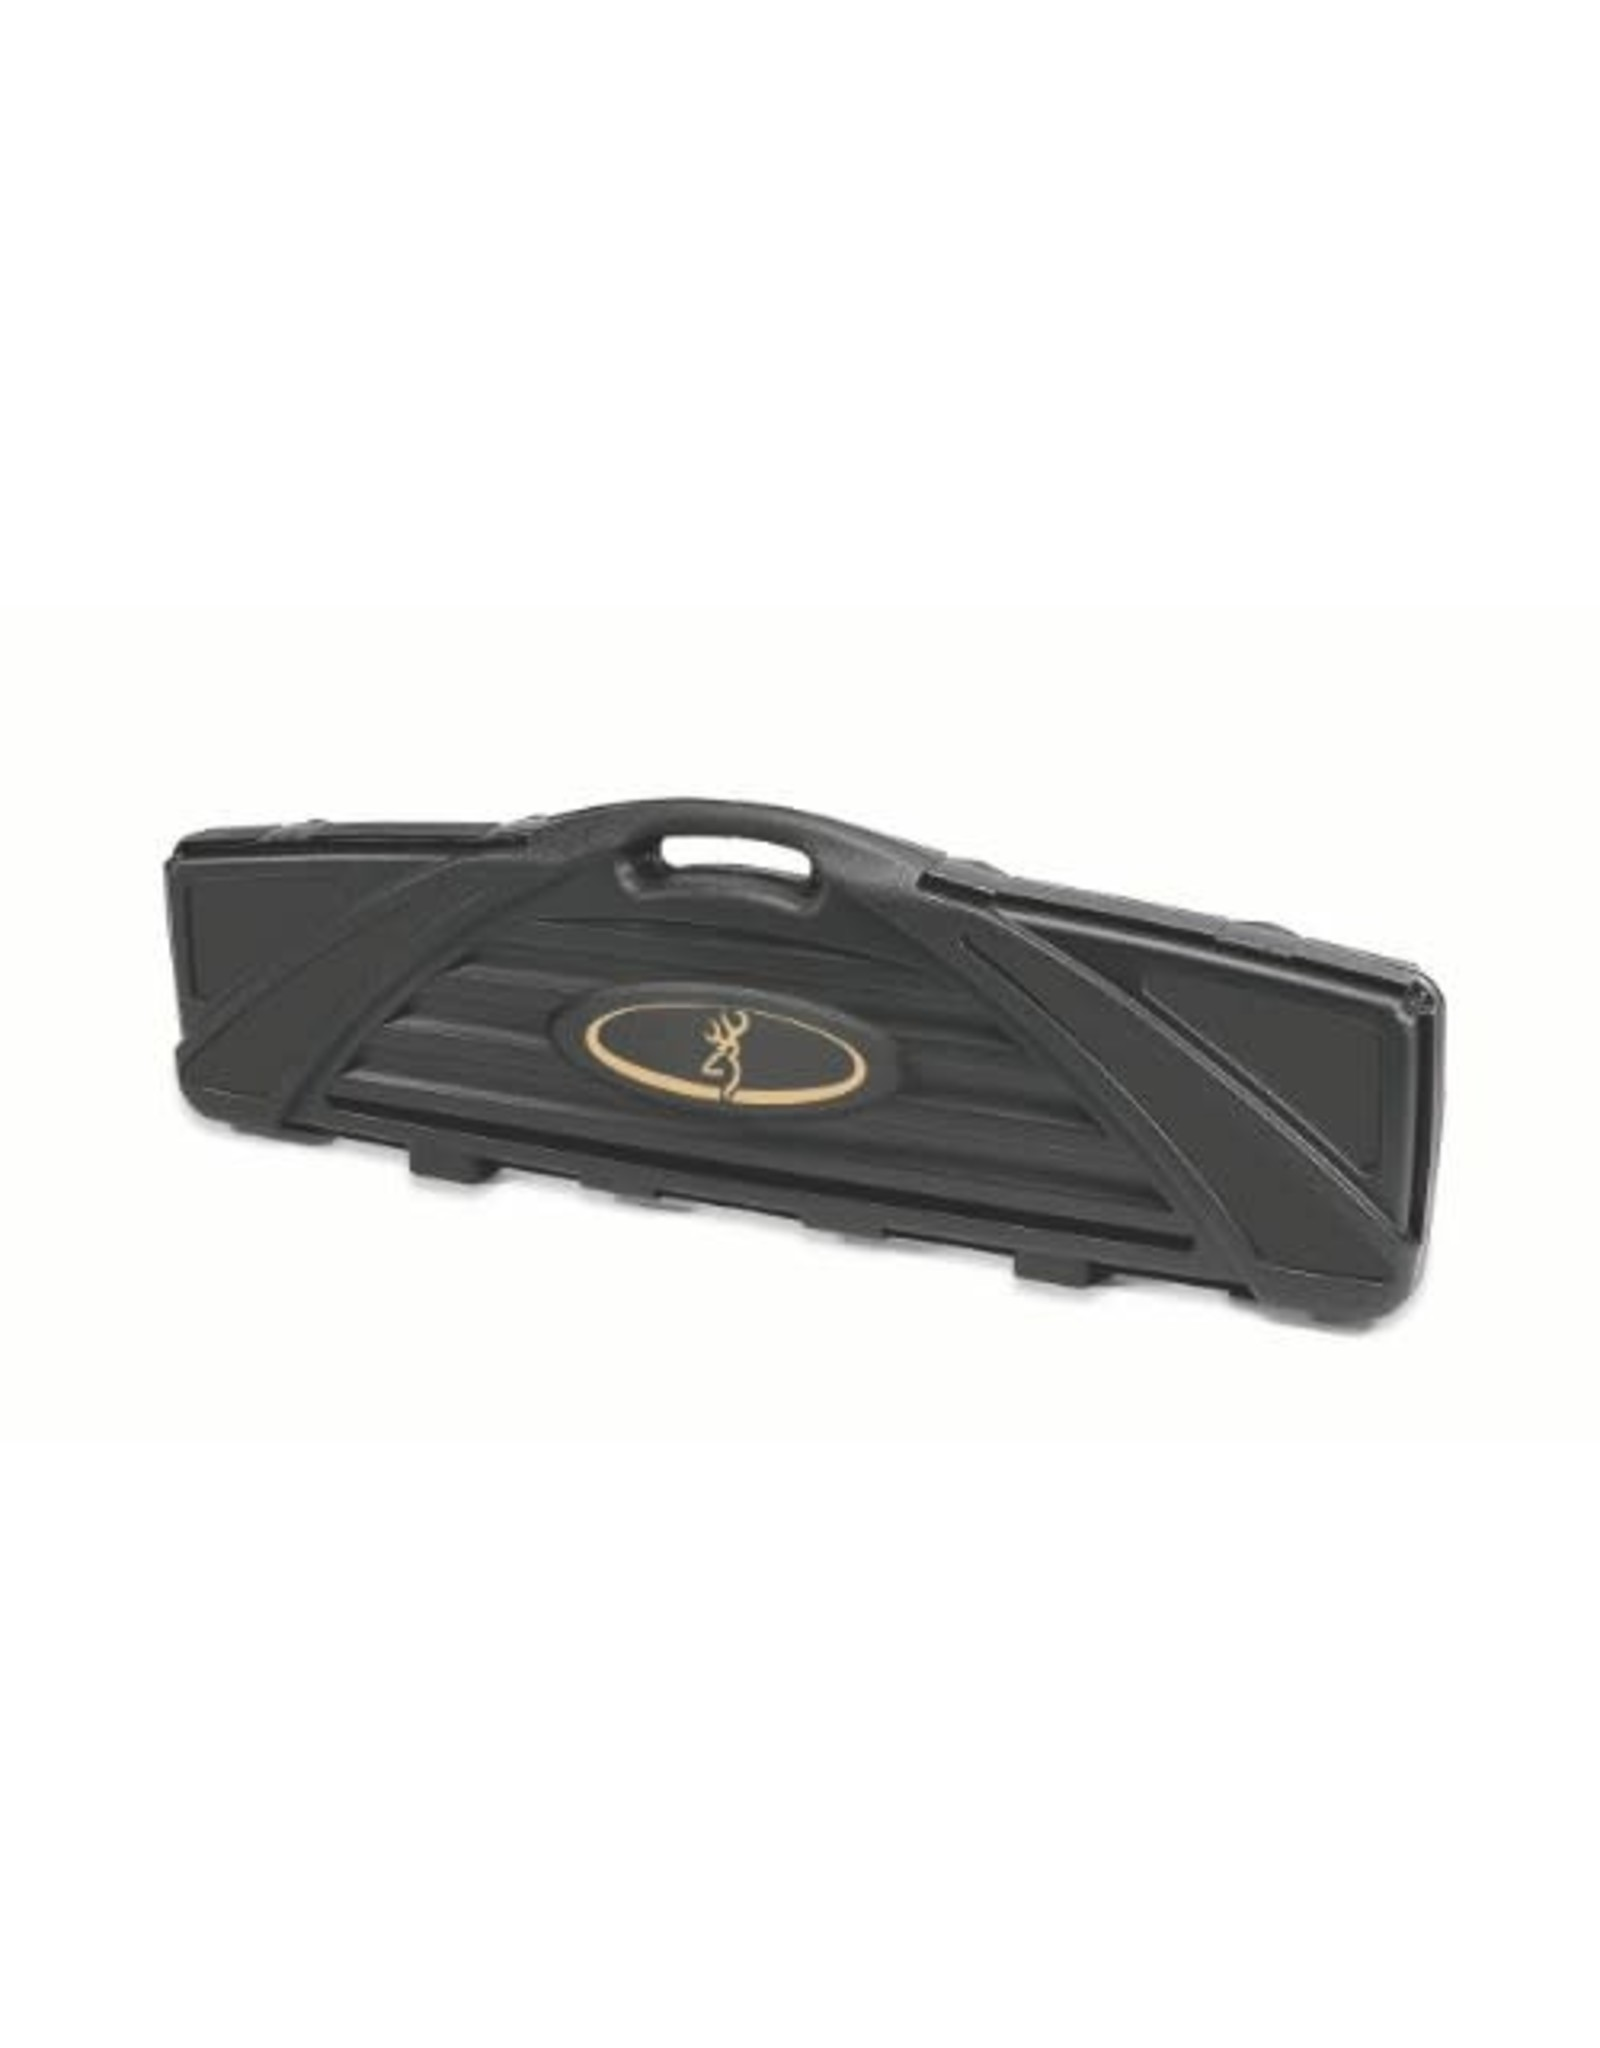 Browning Dual Gun Hard Case Range Gear